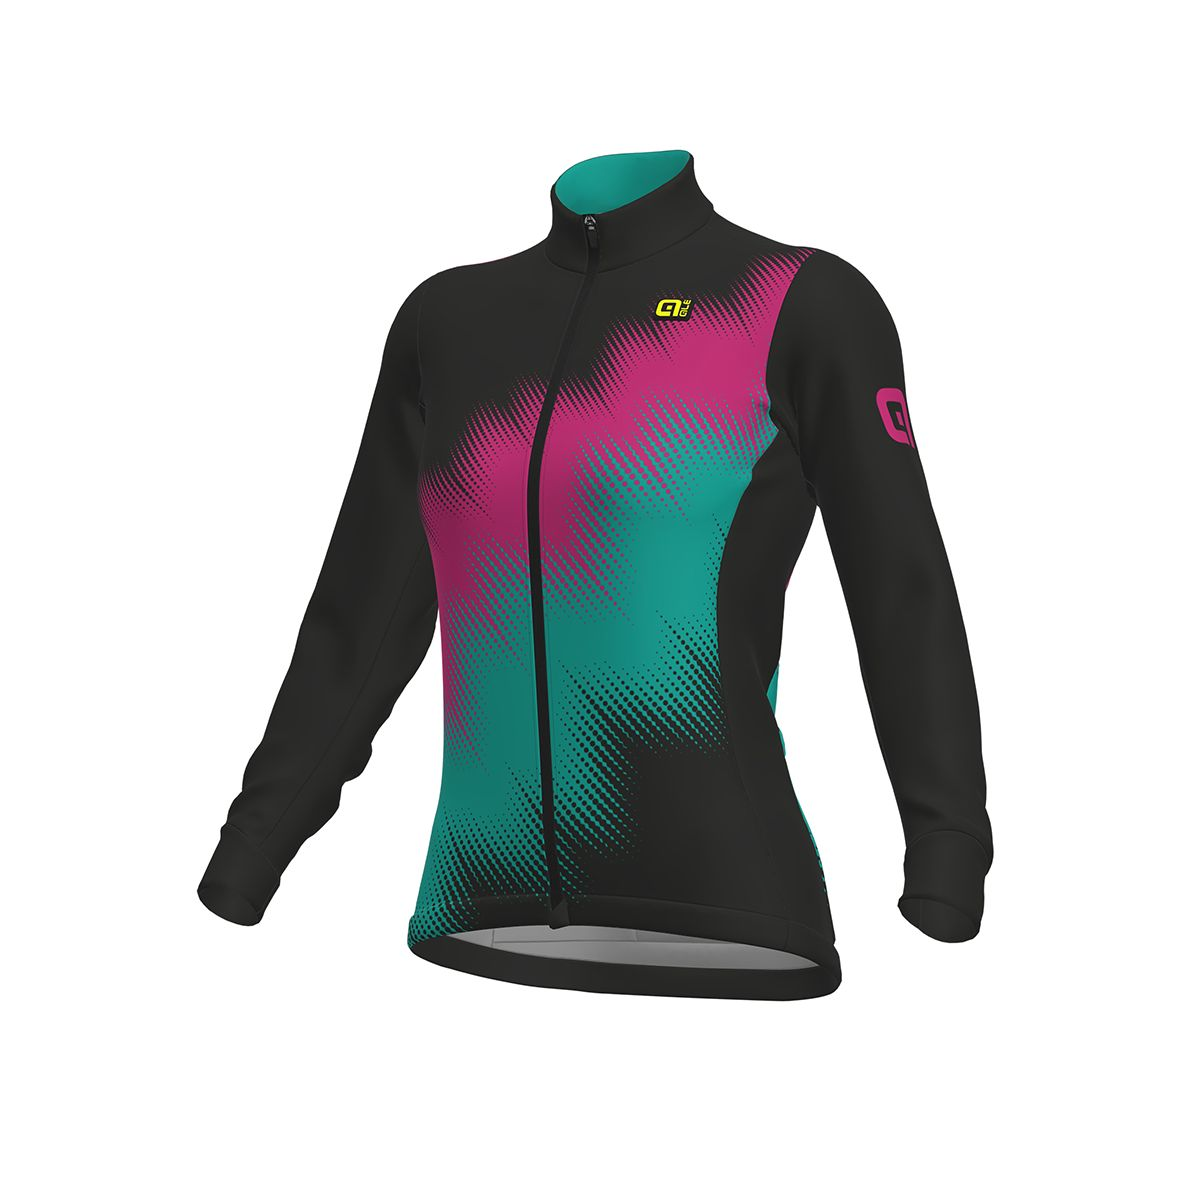 SOLID Pulse Jersey long sleeve for women